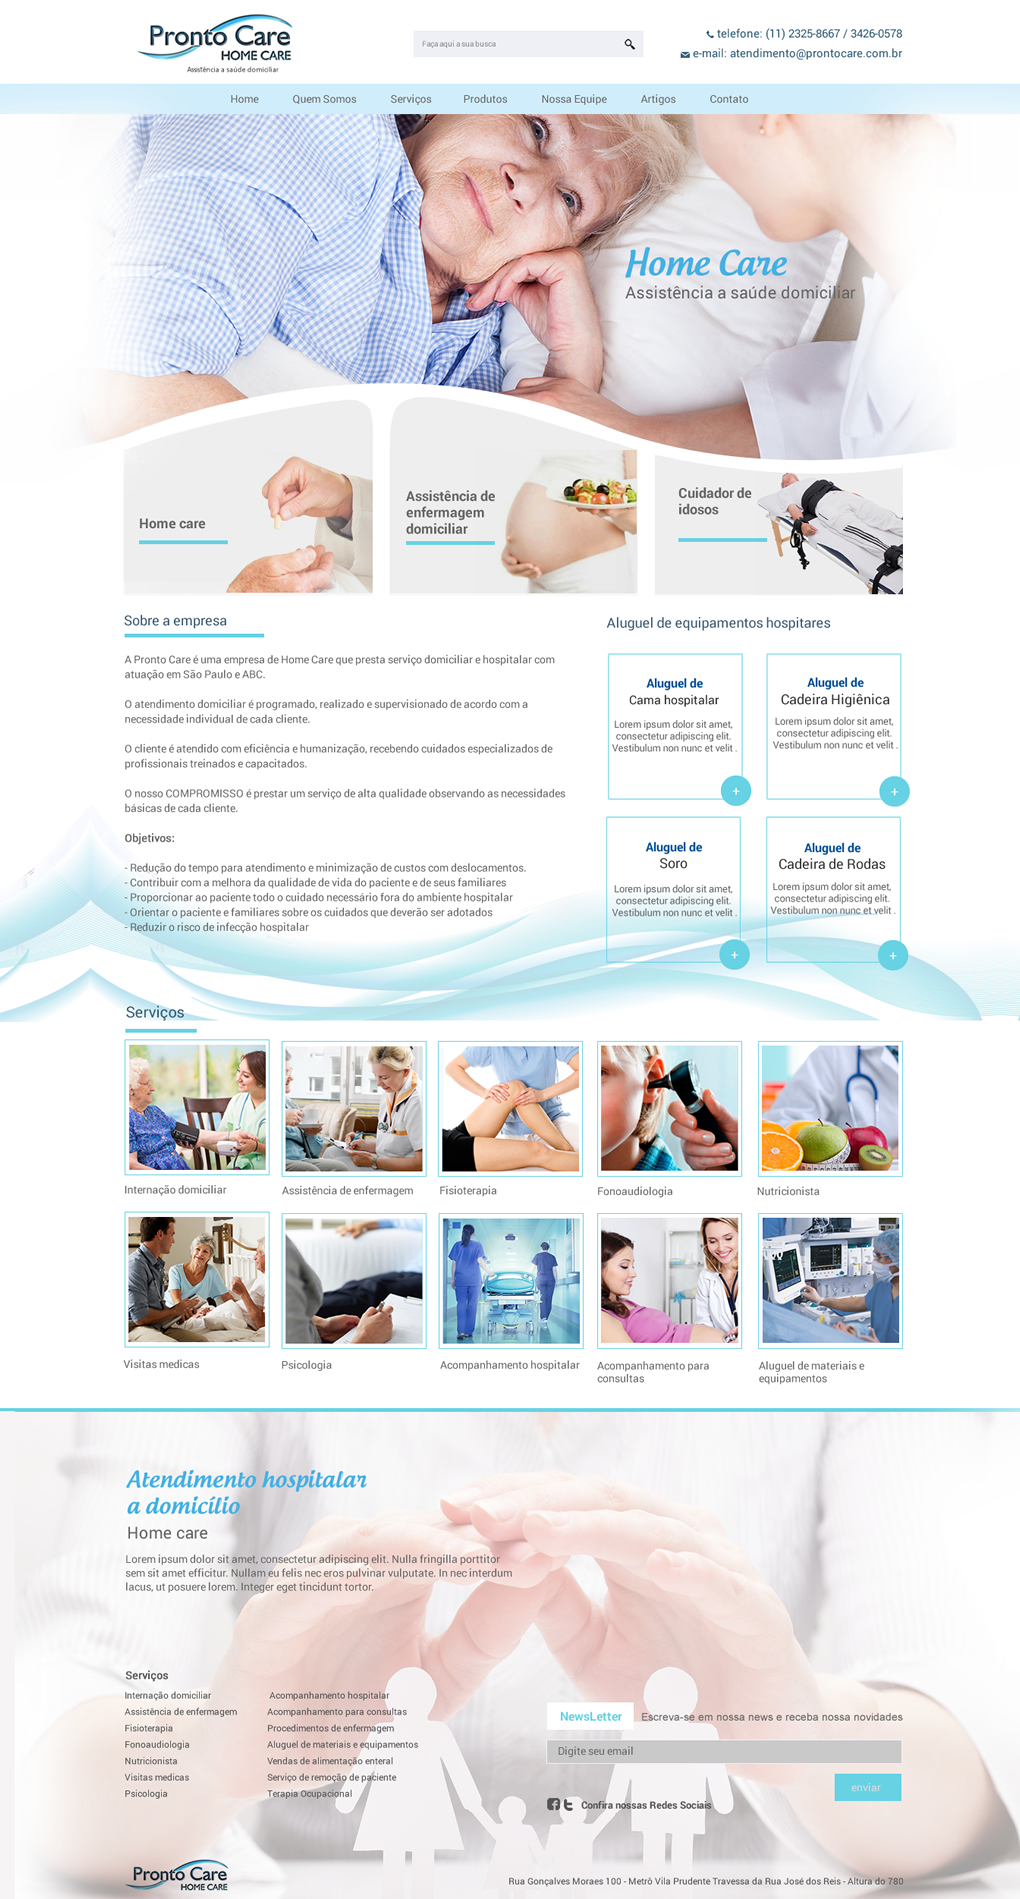 criacao-de-sites-pronto-care